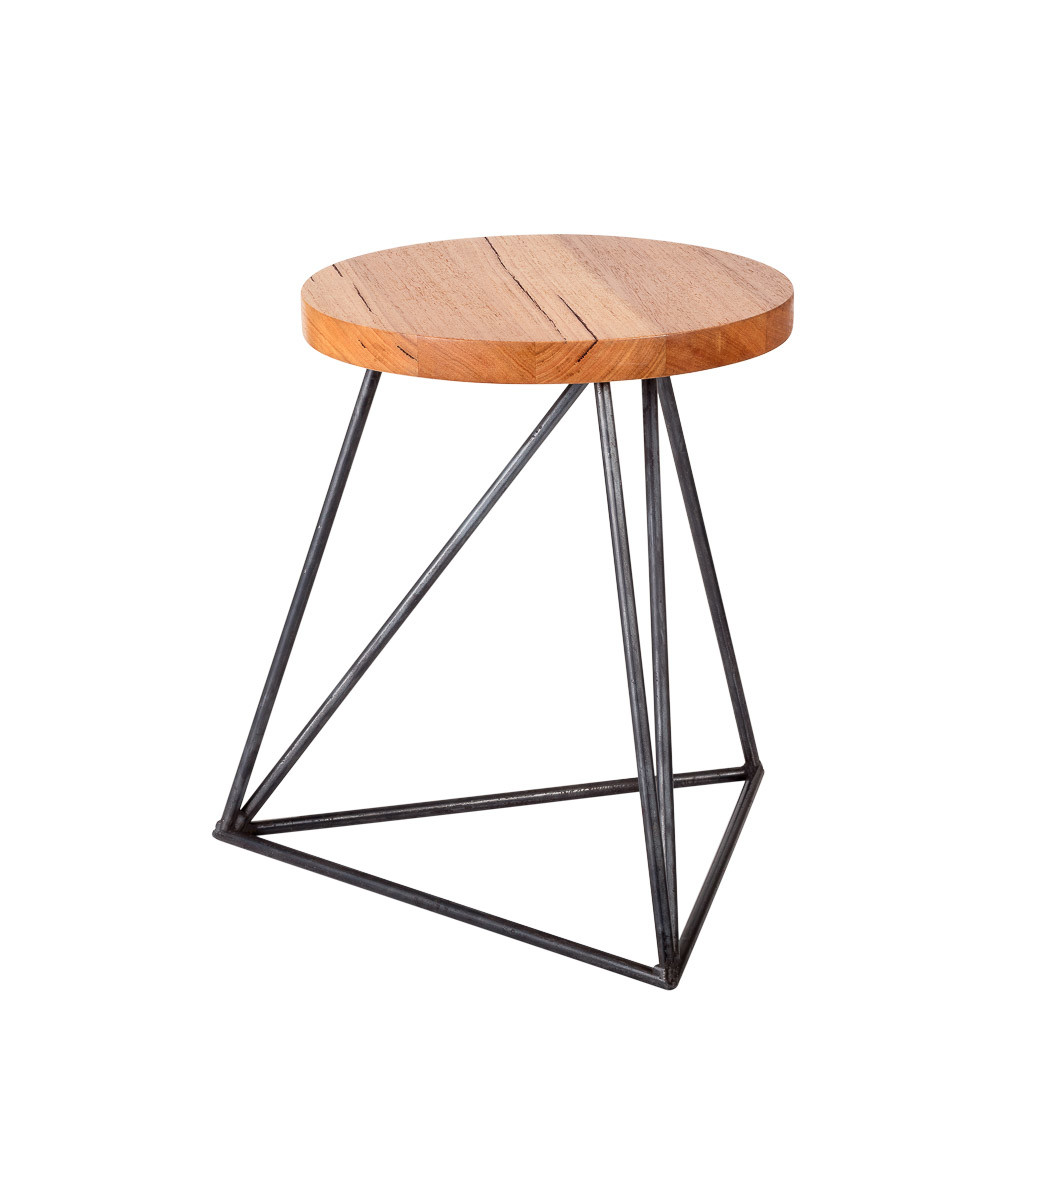 Furniture stools Hairpin Legs Stool industrial triangle 30 degree view round top